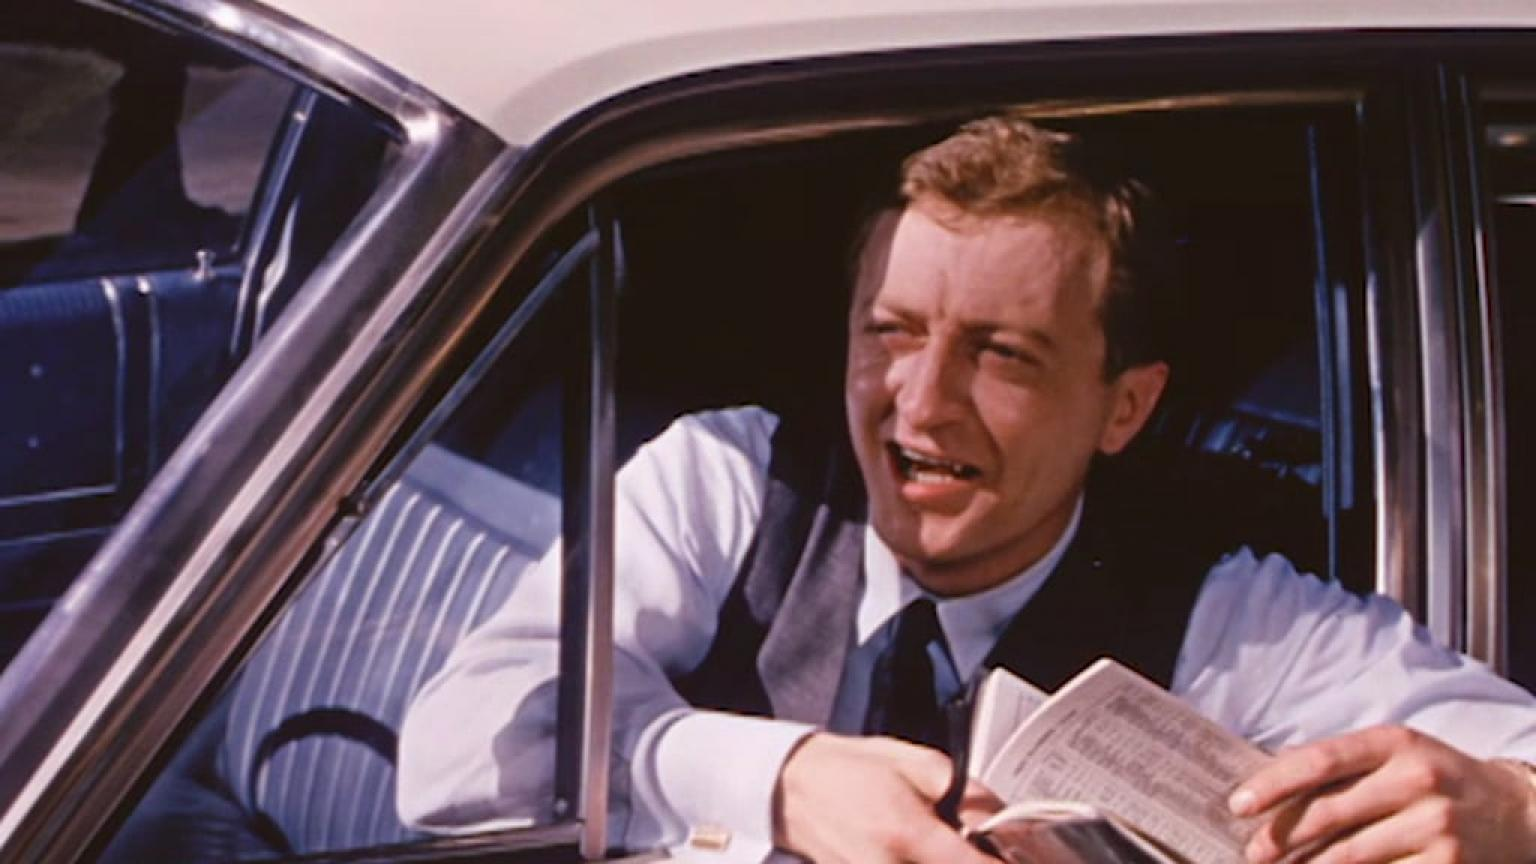 Graham Kennedy leaning out of a car window asking for directions